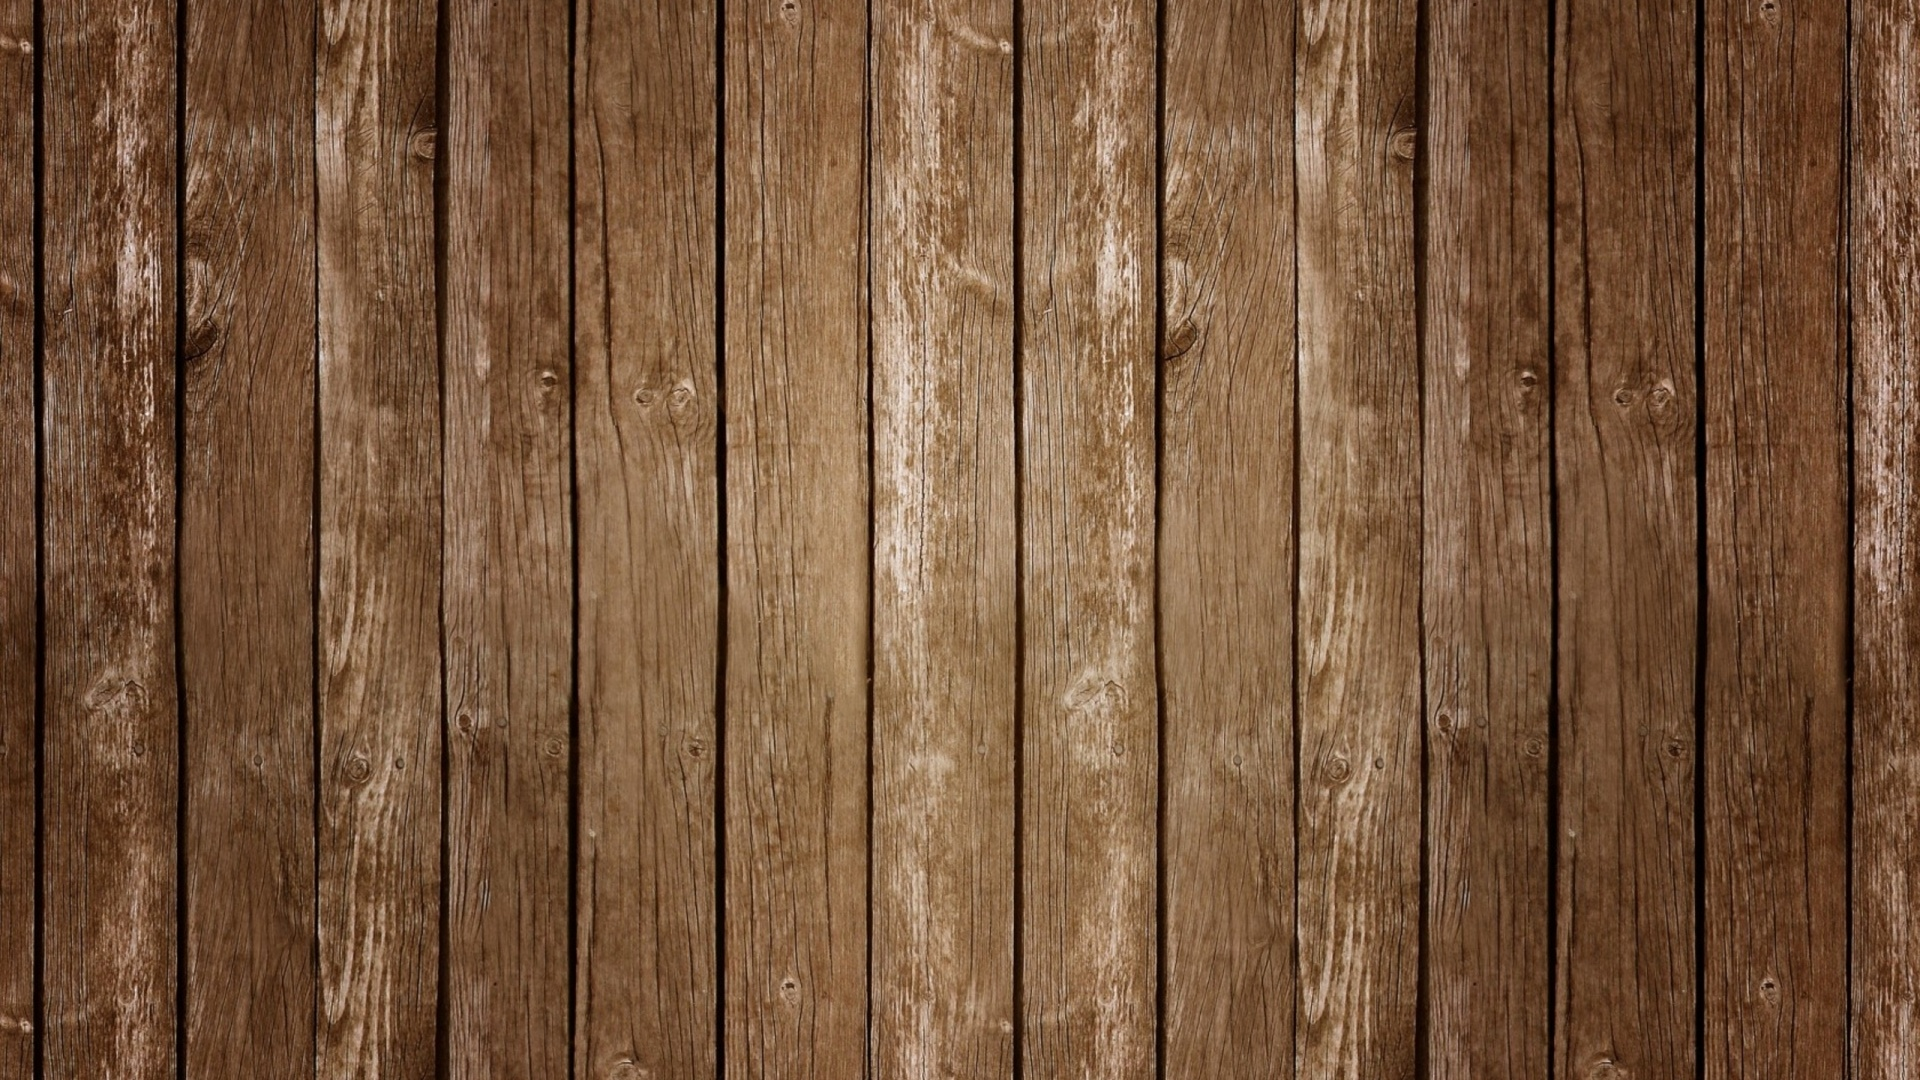 Wallpaper That Looks Like Wood 08 0f 10 with Wood Timber